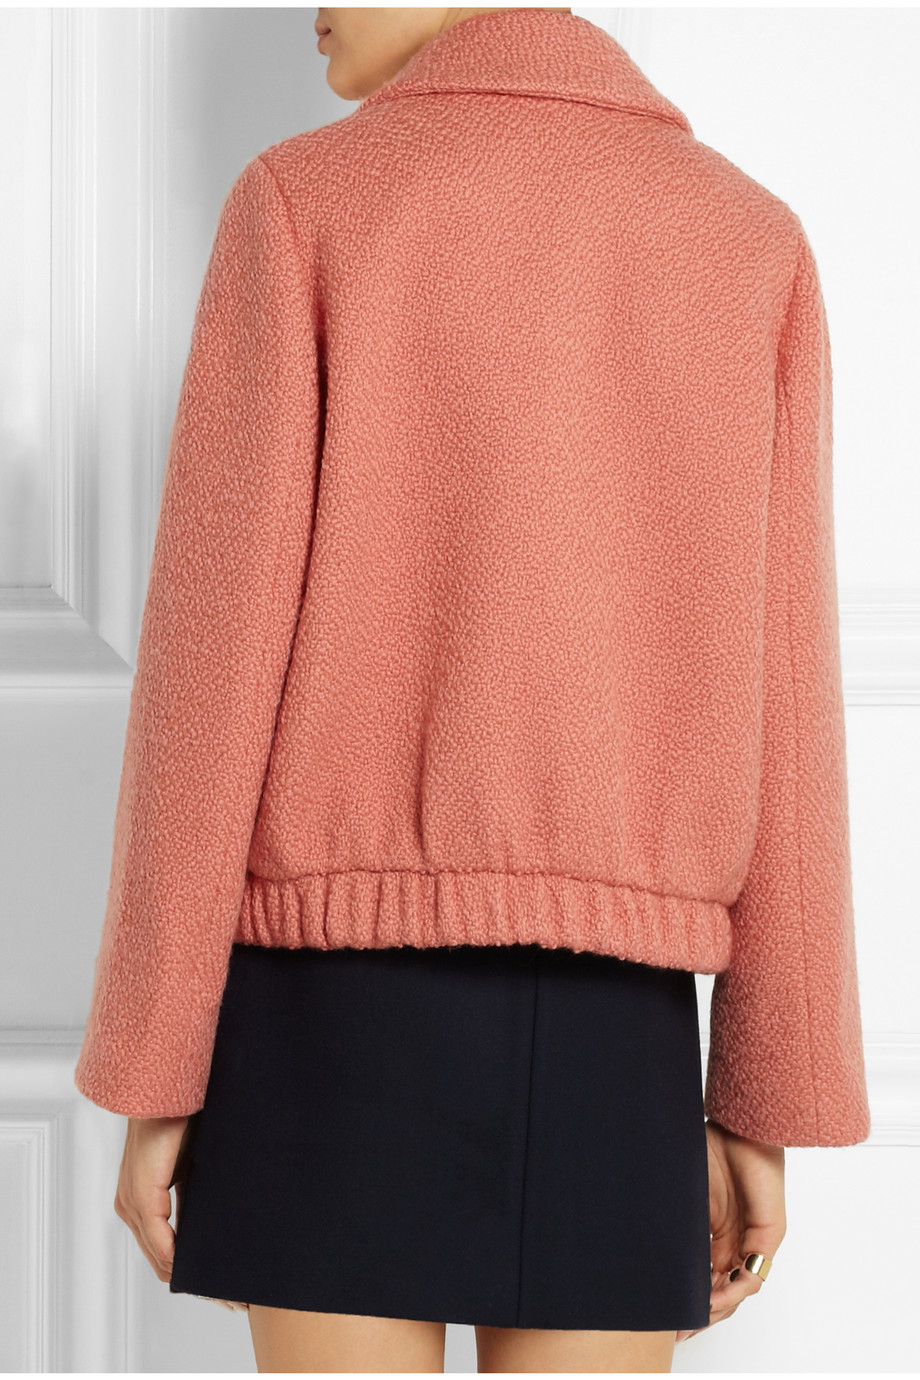 Carven Oversized Cropped Textured-Wool Coat in Orange | Lyst